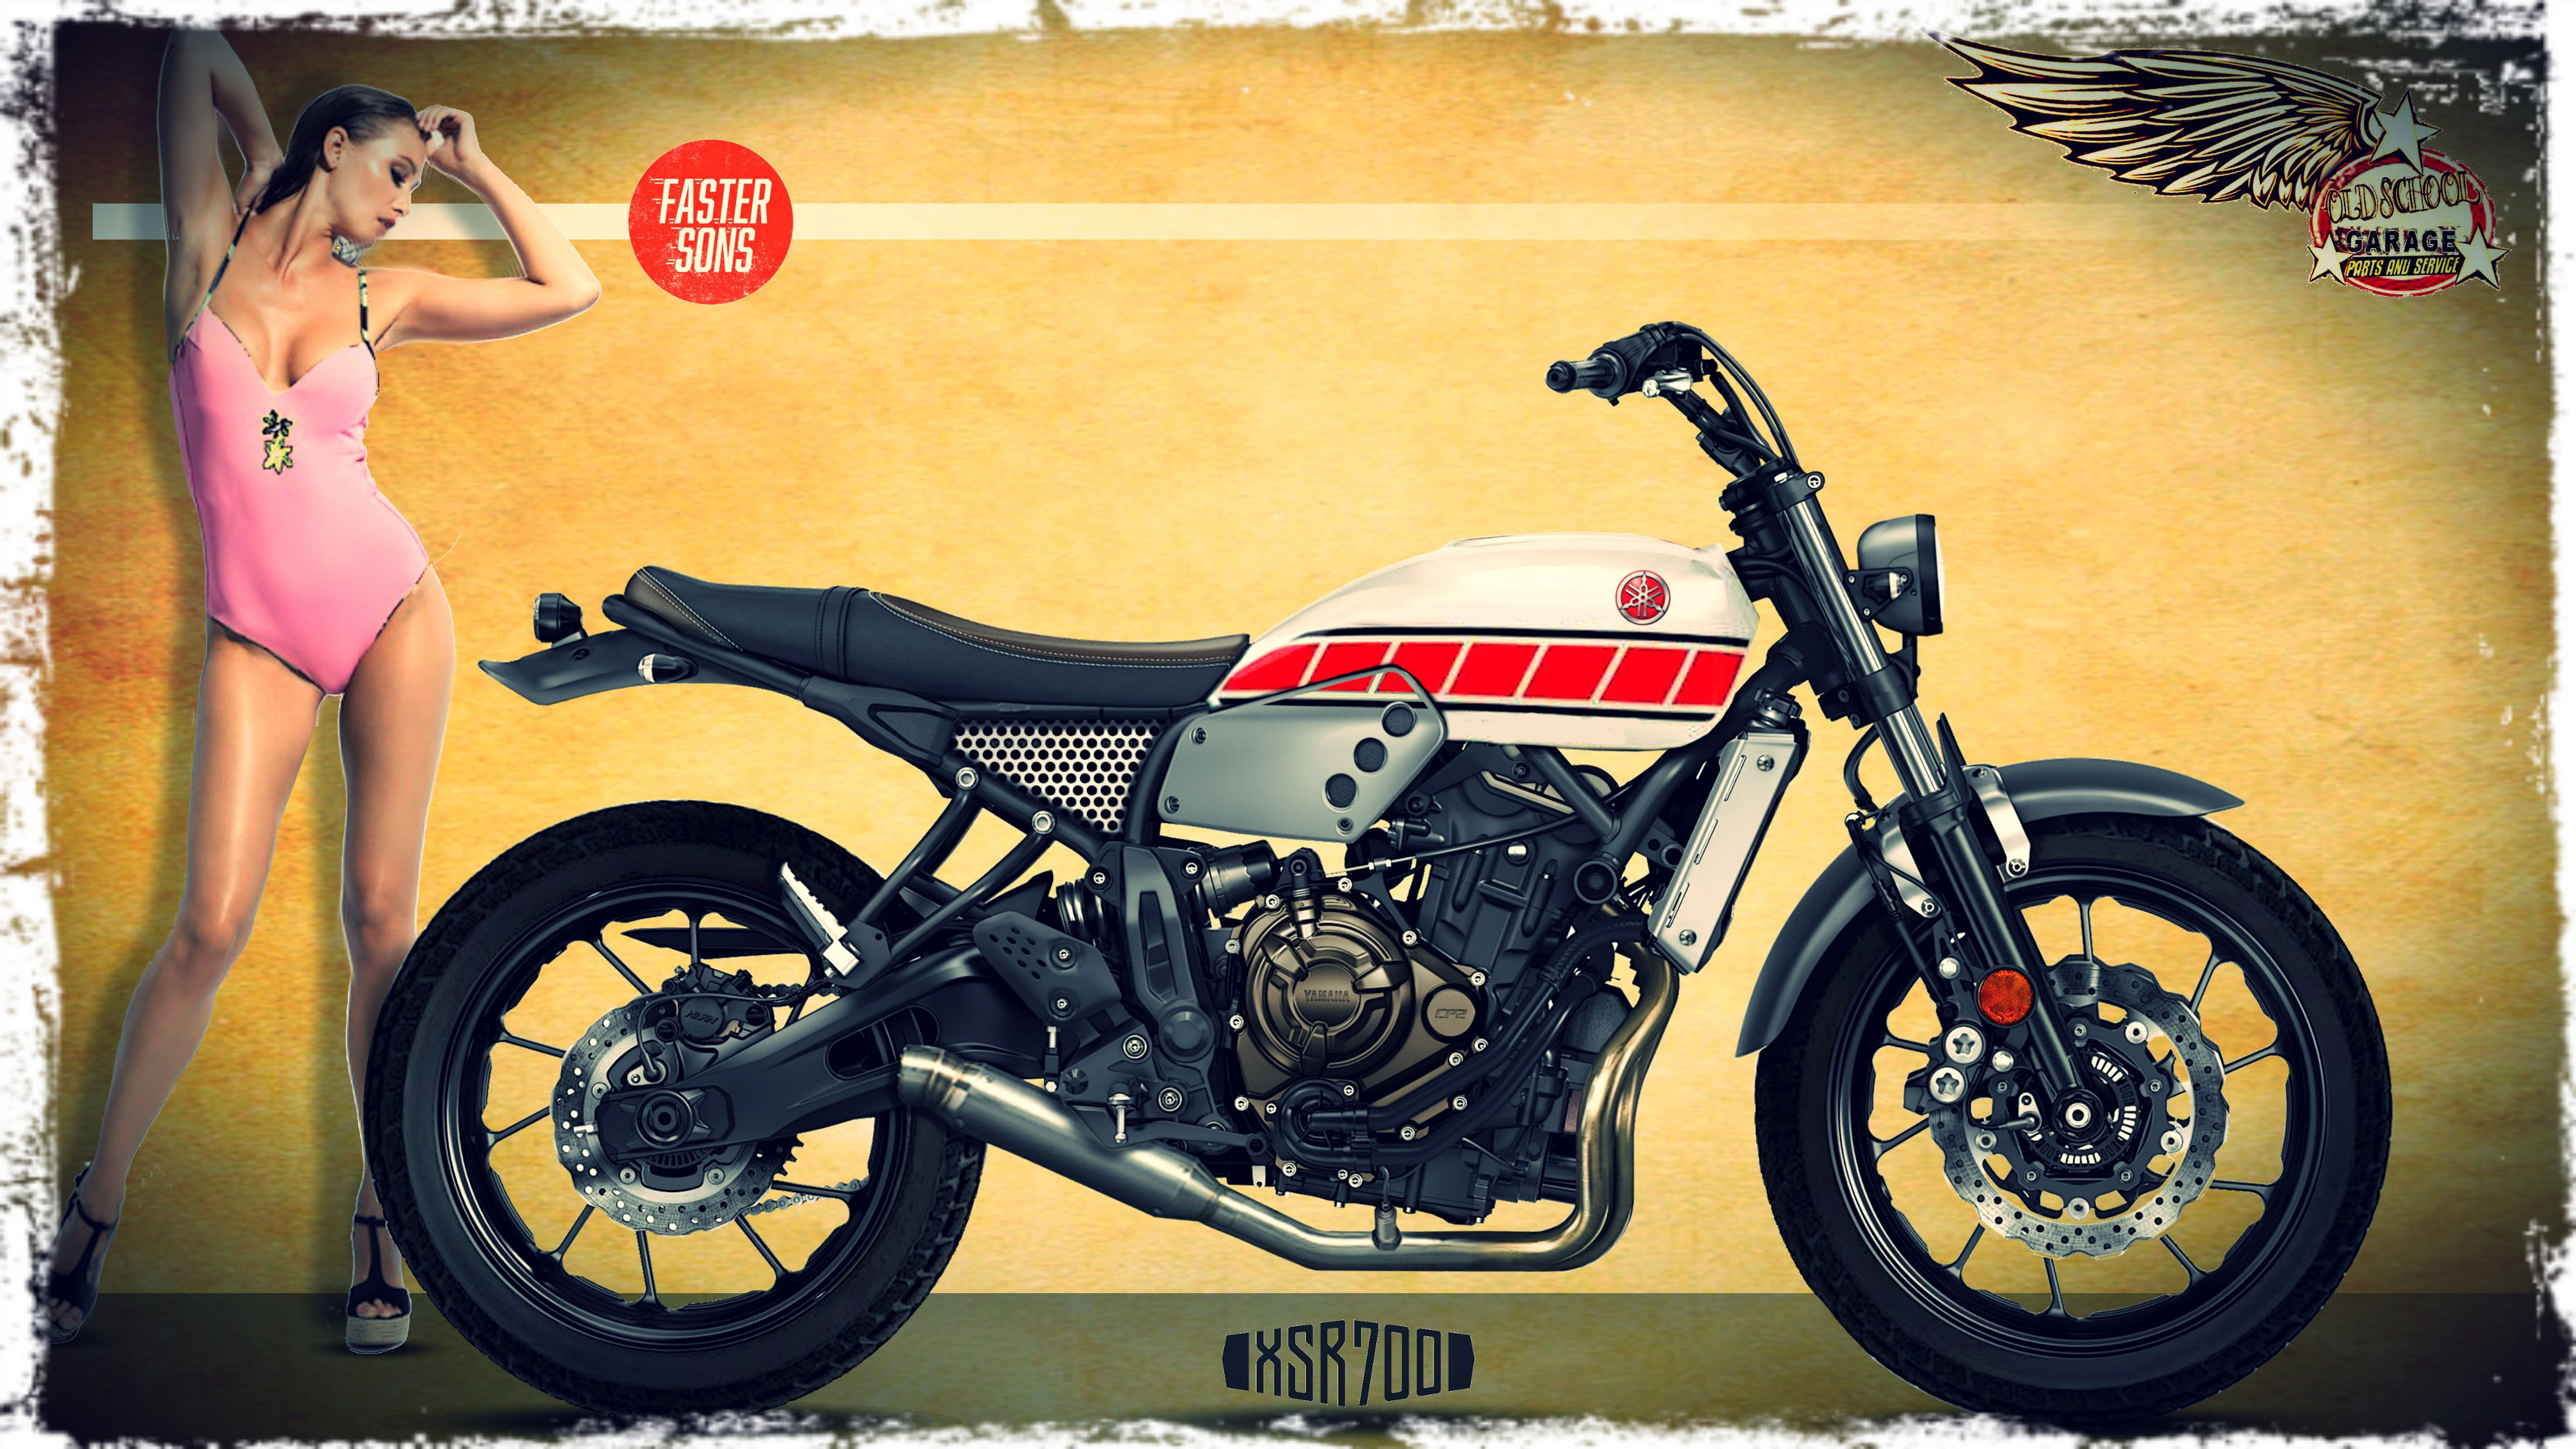 yamaha xsr 700 special scrambler tracker faster sons. Black Bedroom Furniture Sets. Home Design Ideas